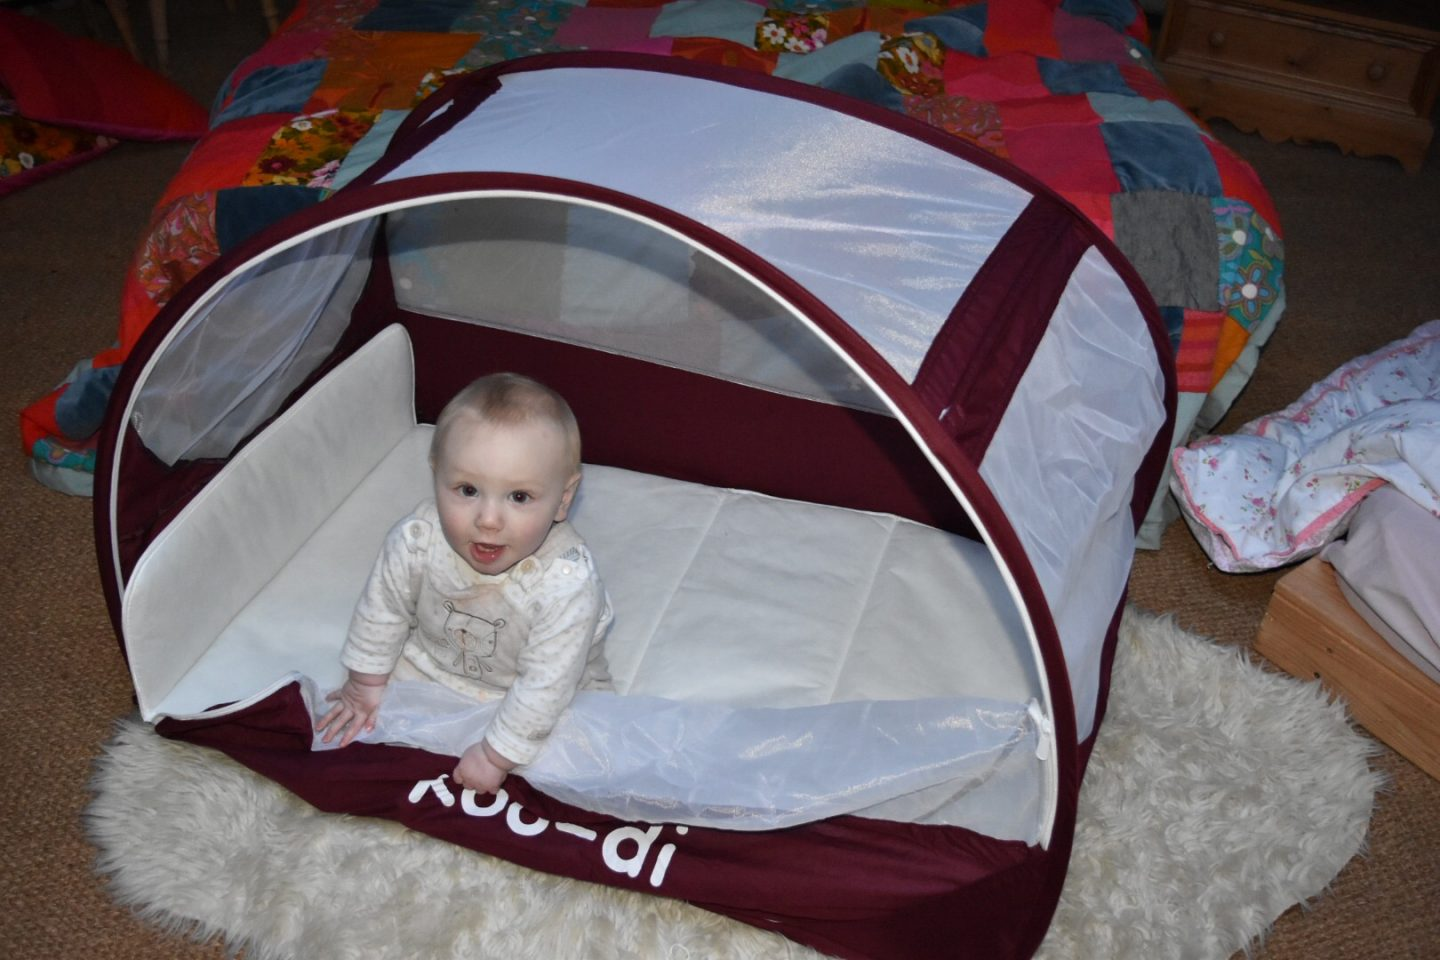 Koo-di Pop-Up travel bubble cot REVIEW